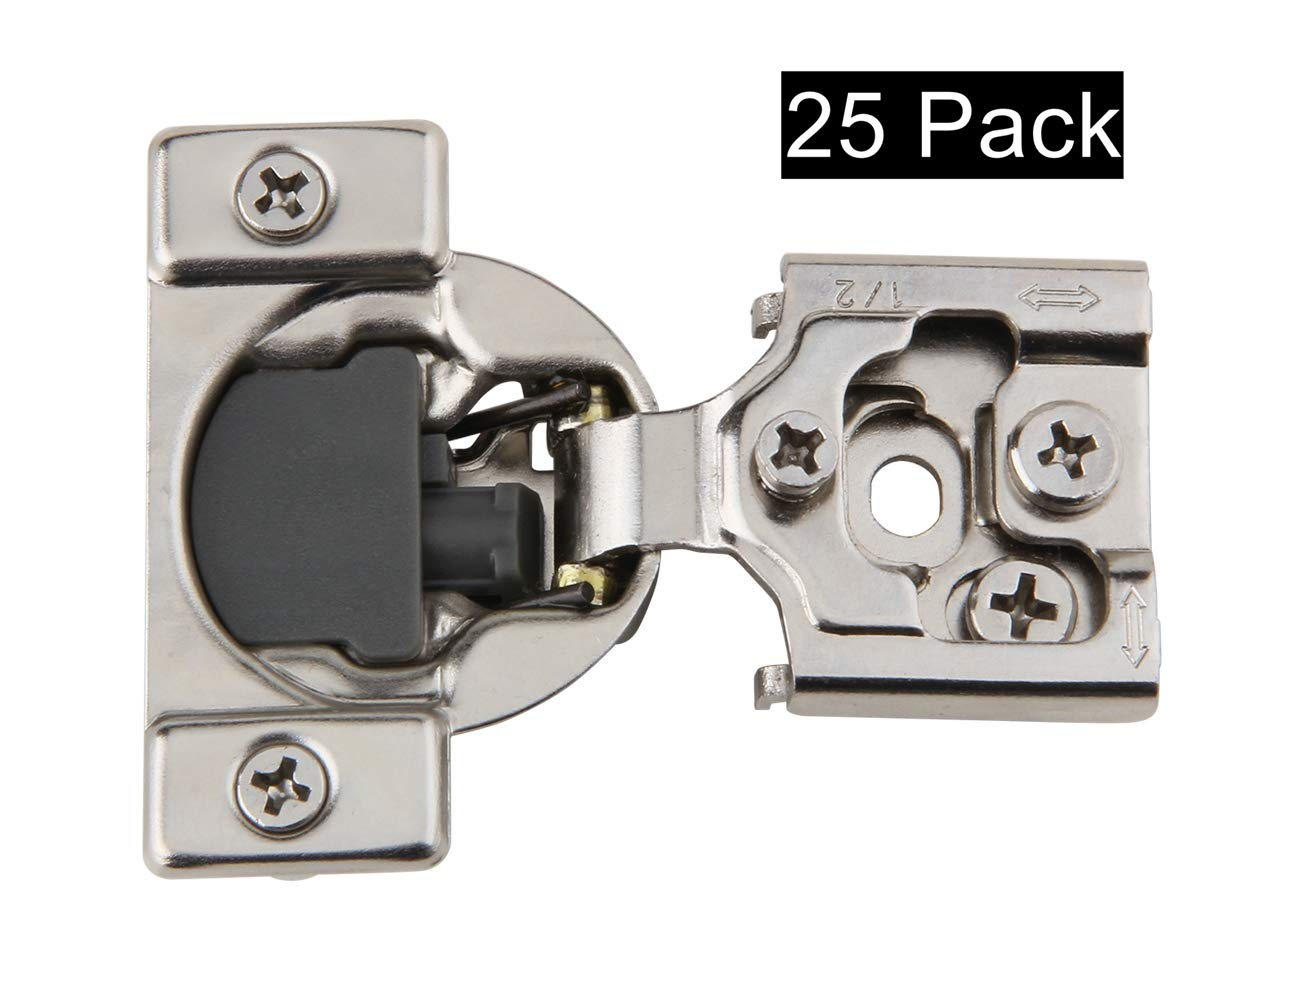 Silverline SCH105S Soft Close Hinge, 3 Way Adjustable, 1/2'' Overlay Face Frame, Nickel Plated 25 Pack